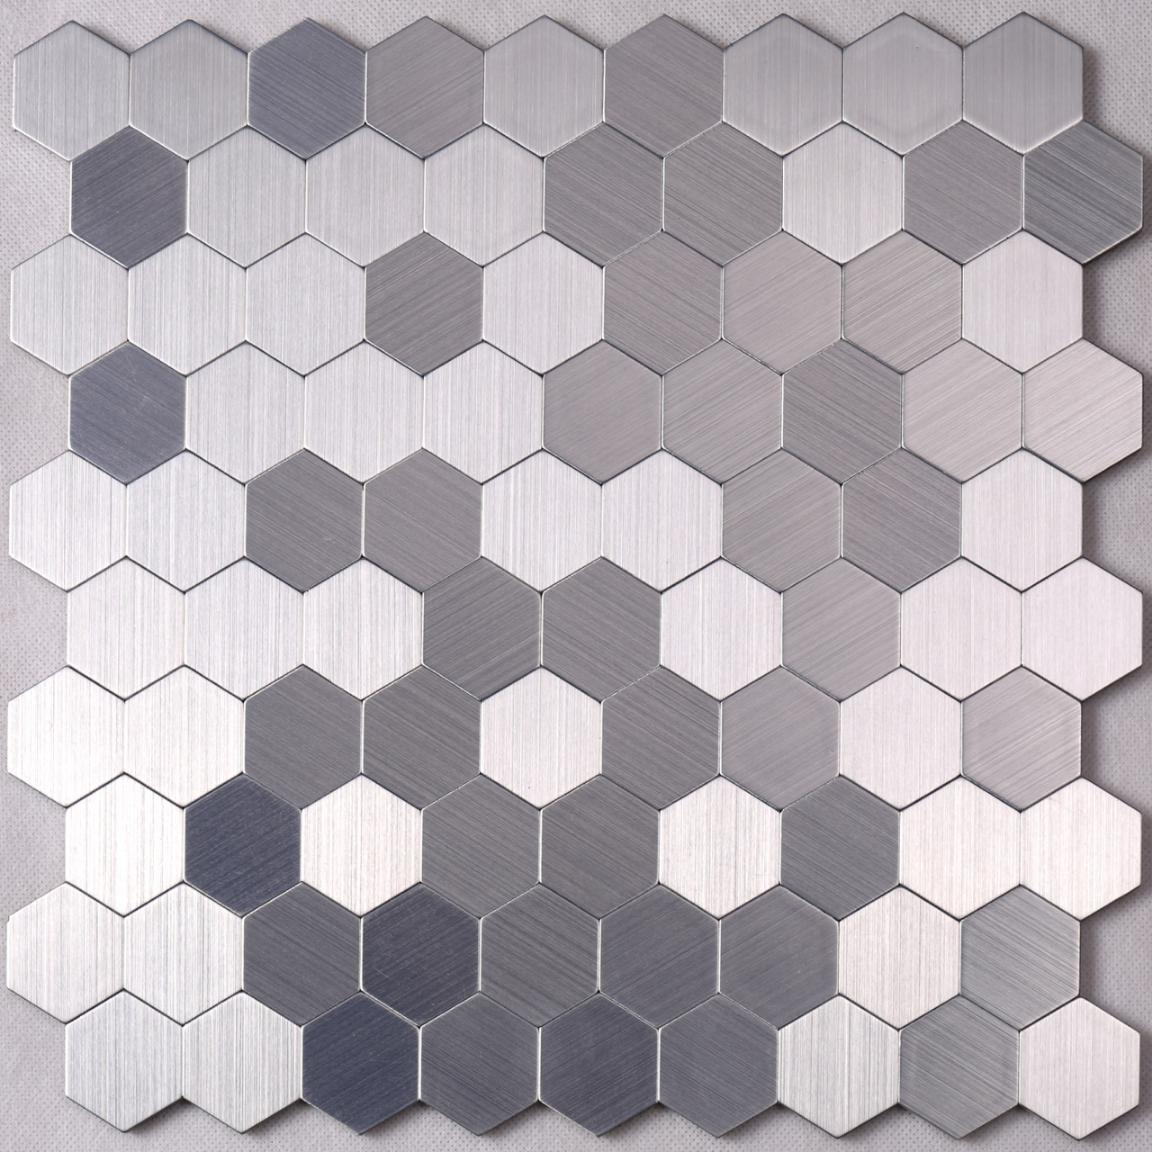 Heng Xing-Metallic Subway Tile Manufacturer, Metallic Bathroom Tiles | Heng Xing-3